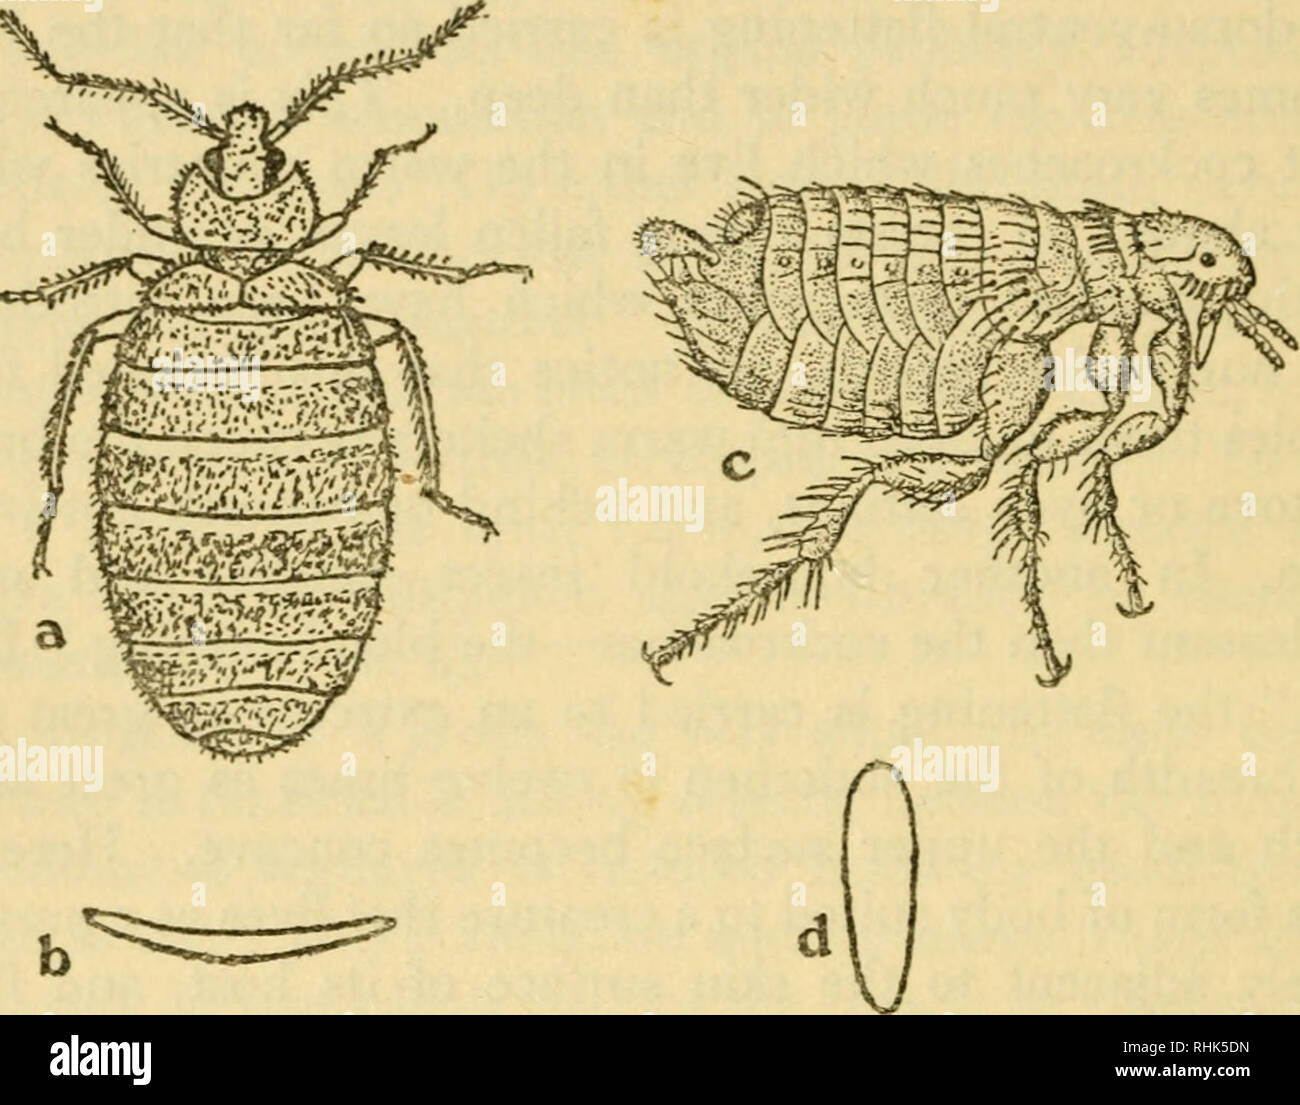 hight resolution of the biology of insects insects biology 270 the biology of insects